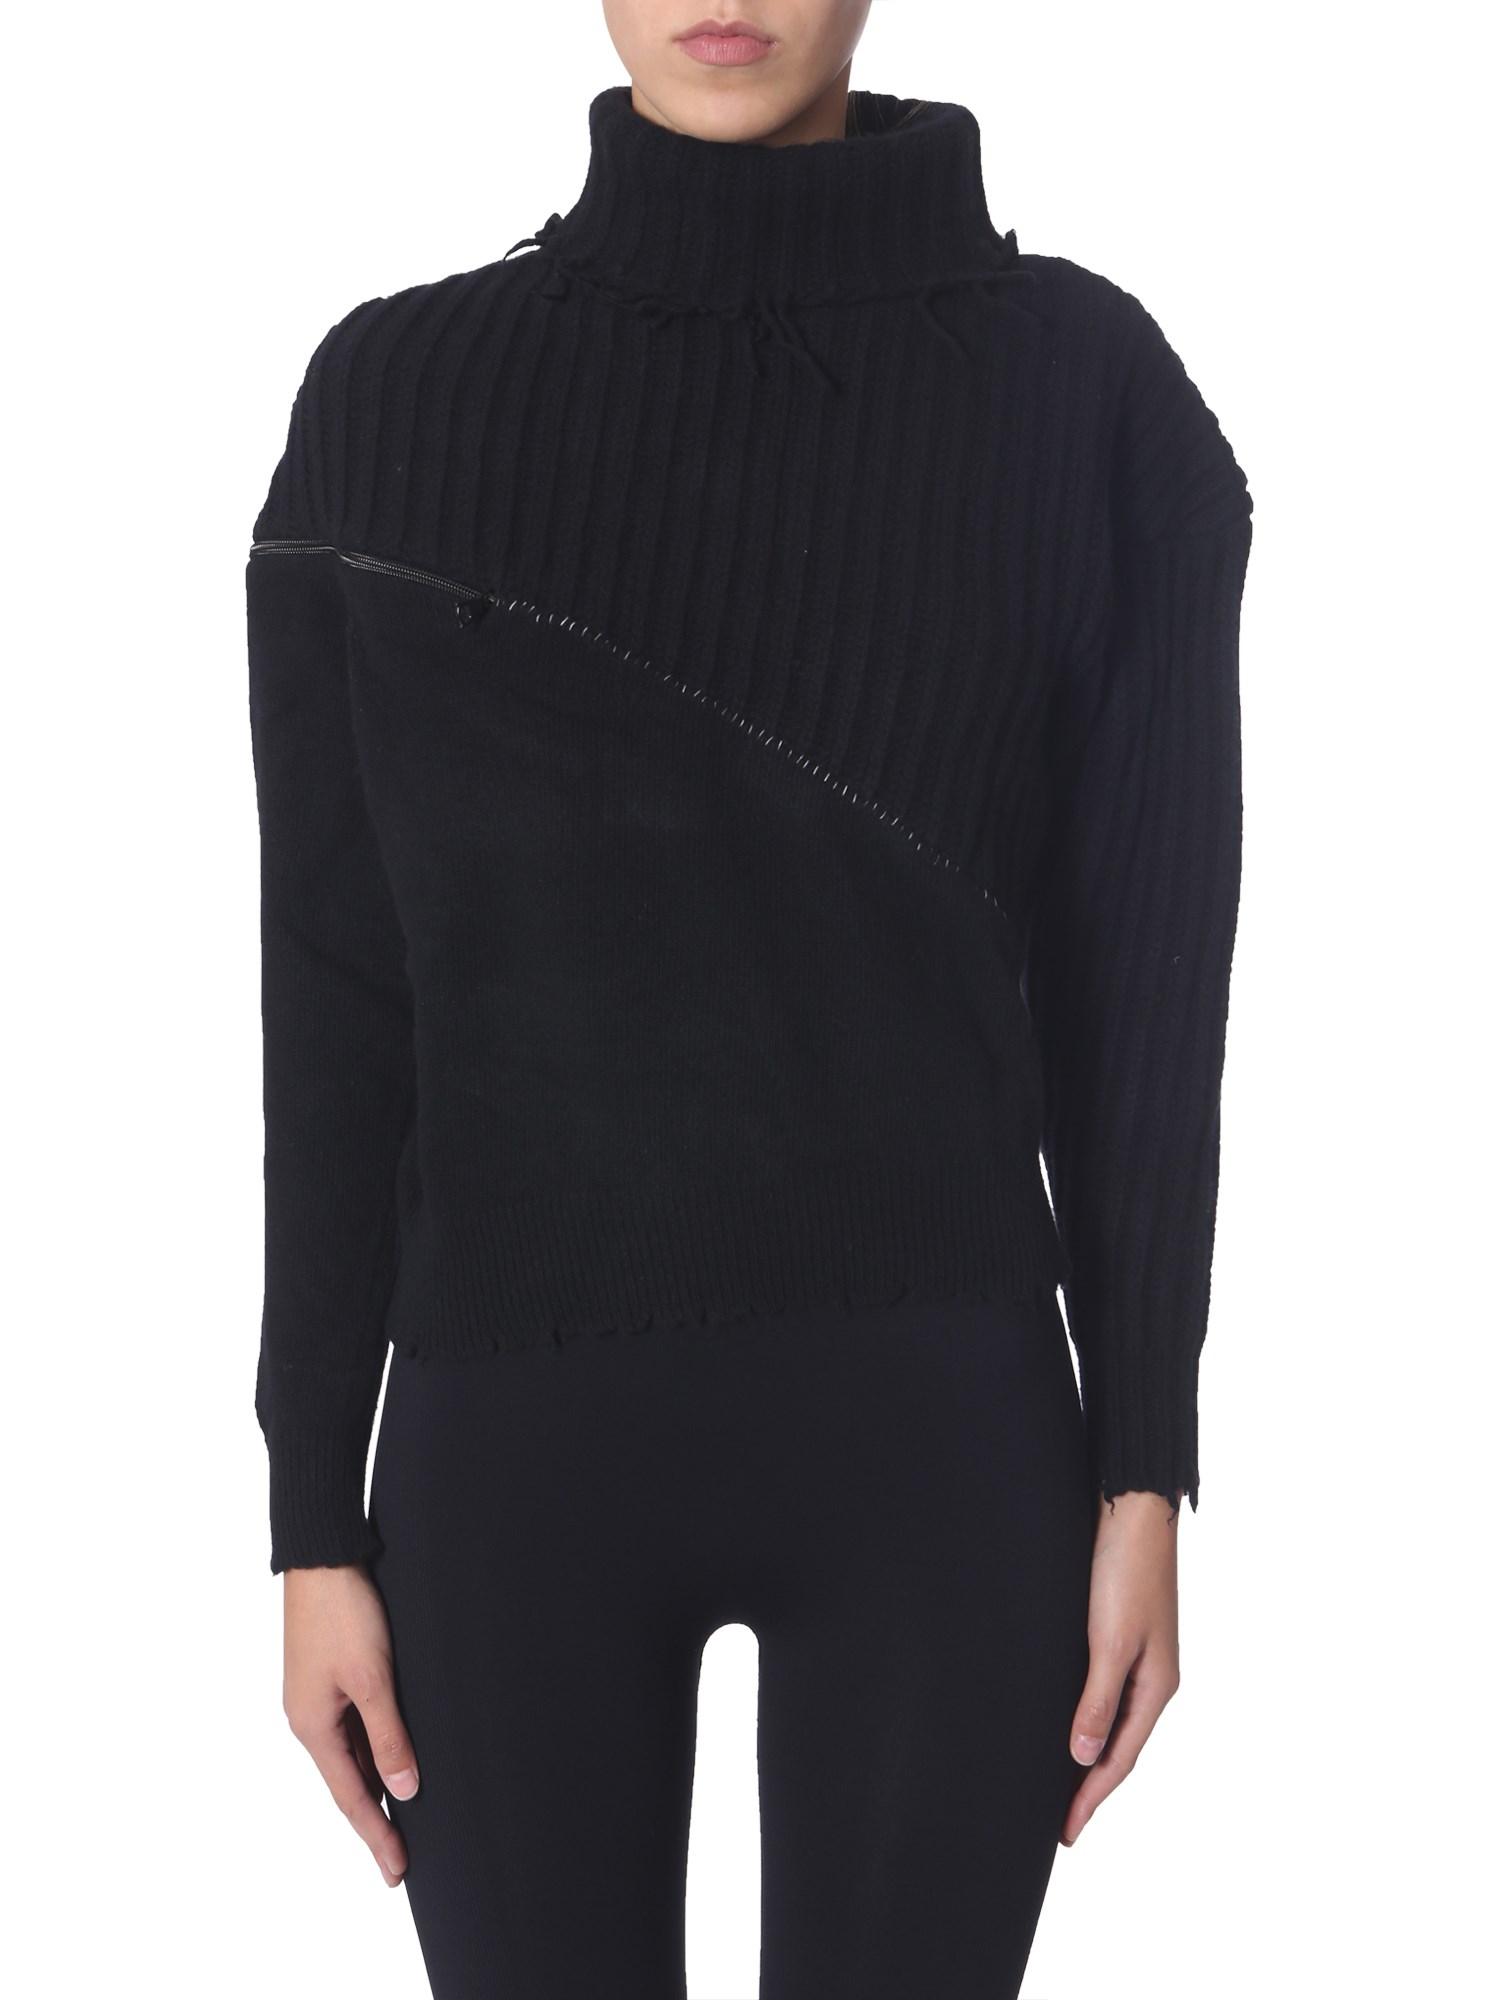 Ben Taverniti Unravel Project Tops TURTLENECK SWEATER